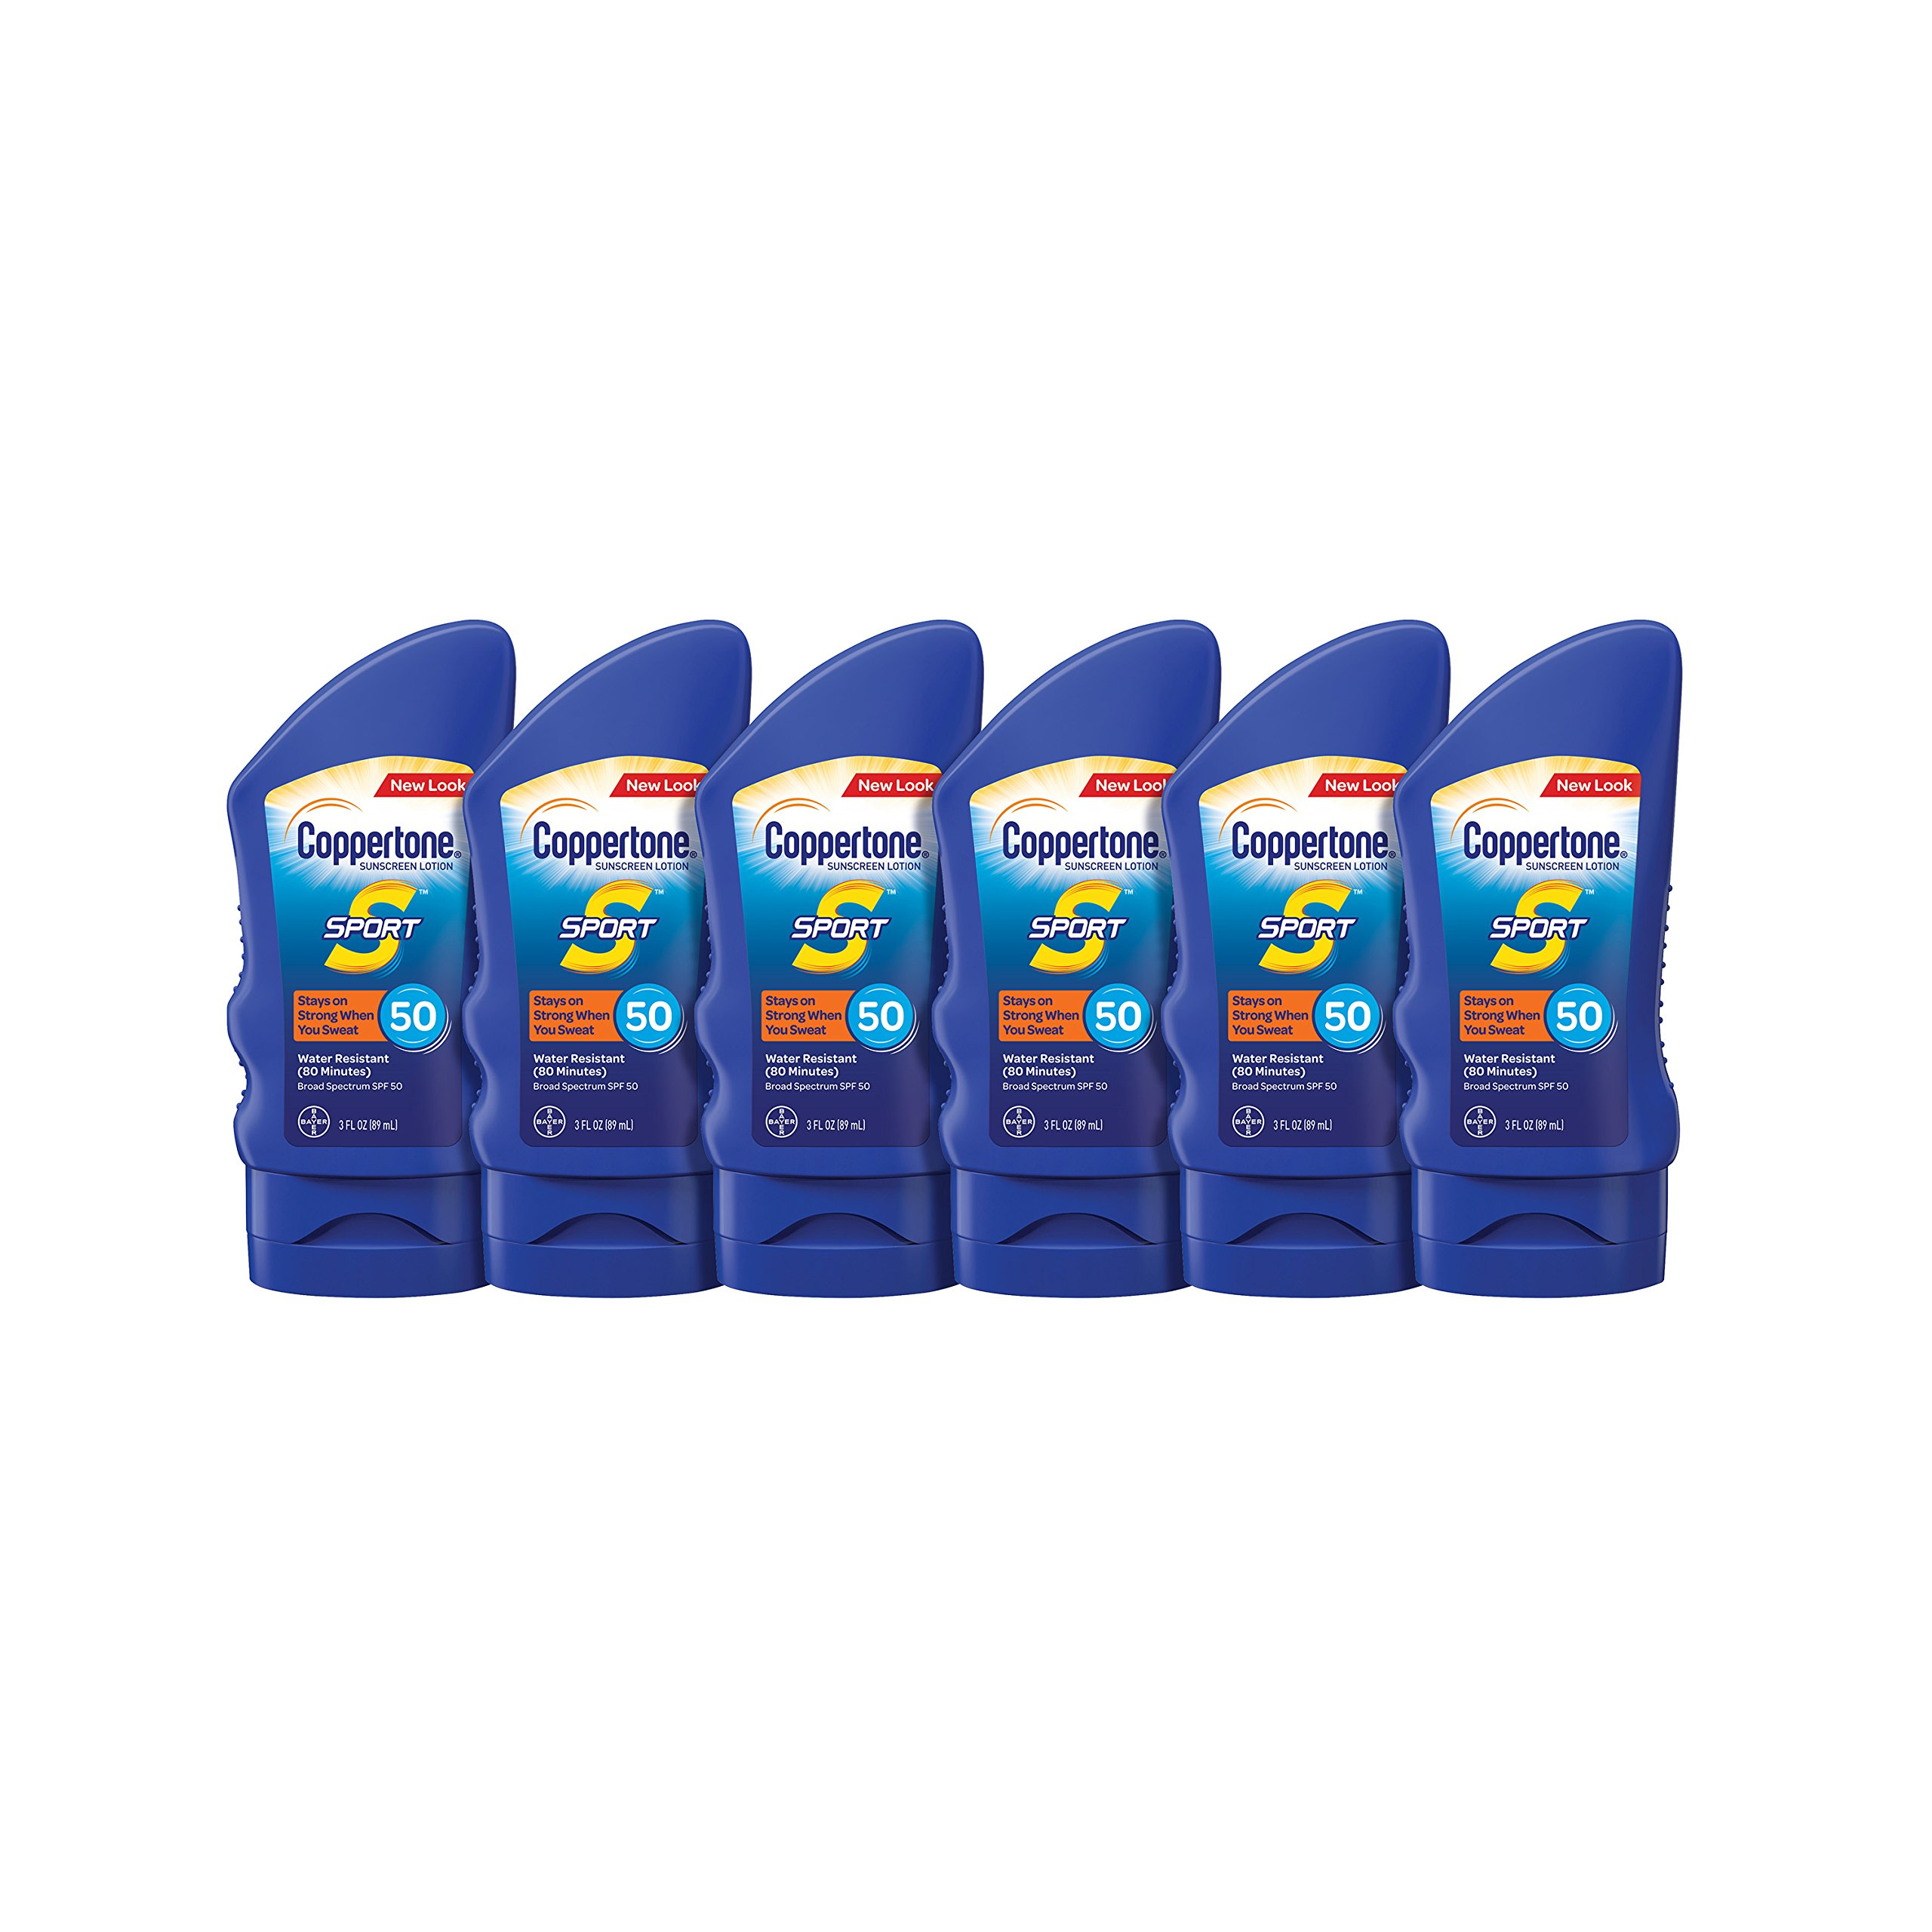 Coppertone SPORT Sunscreen Lotion SPF 50 Travel Size Multipack (3-Fluid Ounce Bottle, Pack of 6)